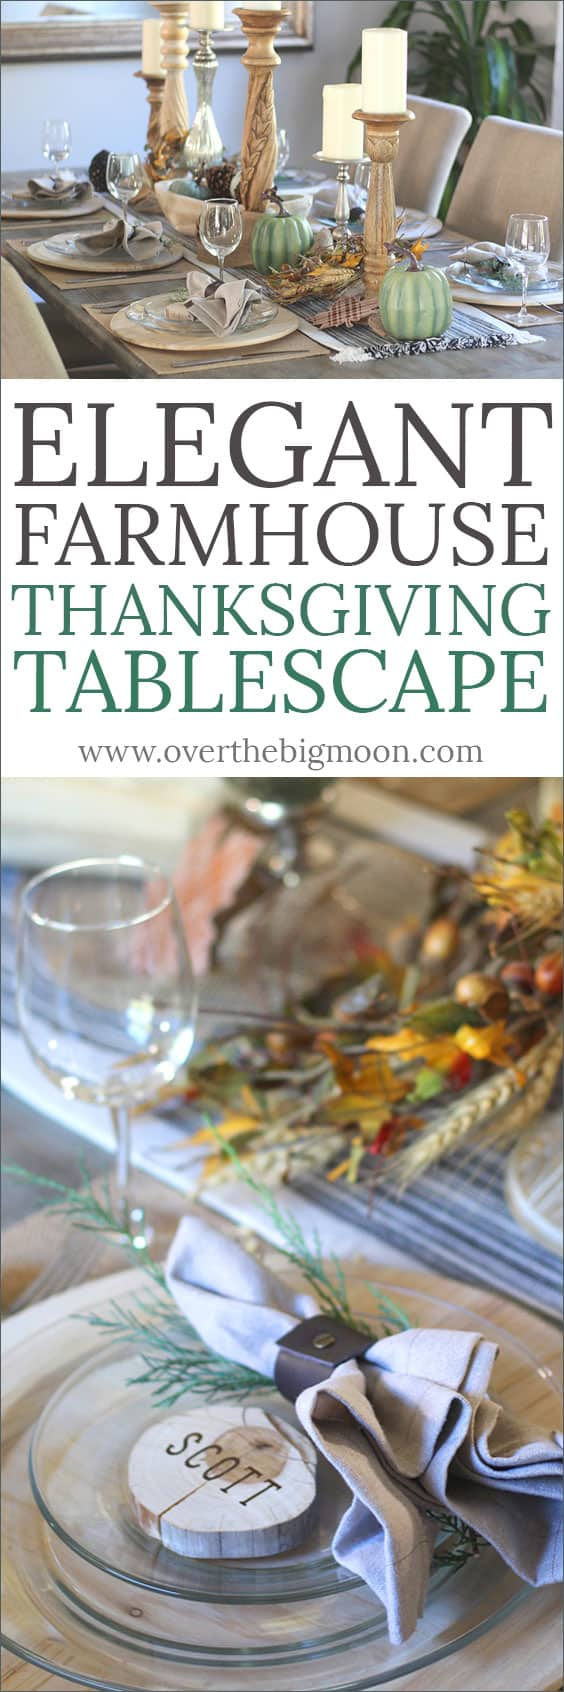 Elegant Farmhouse Thanksgiving Tablescape and DIY Wood Slice Thanksgiving Place Card! From www.overthebigmoon.com